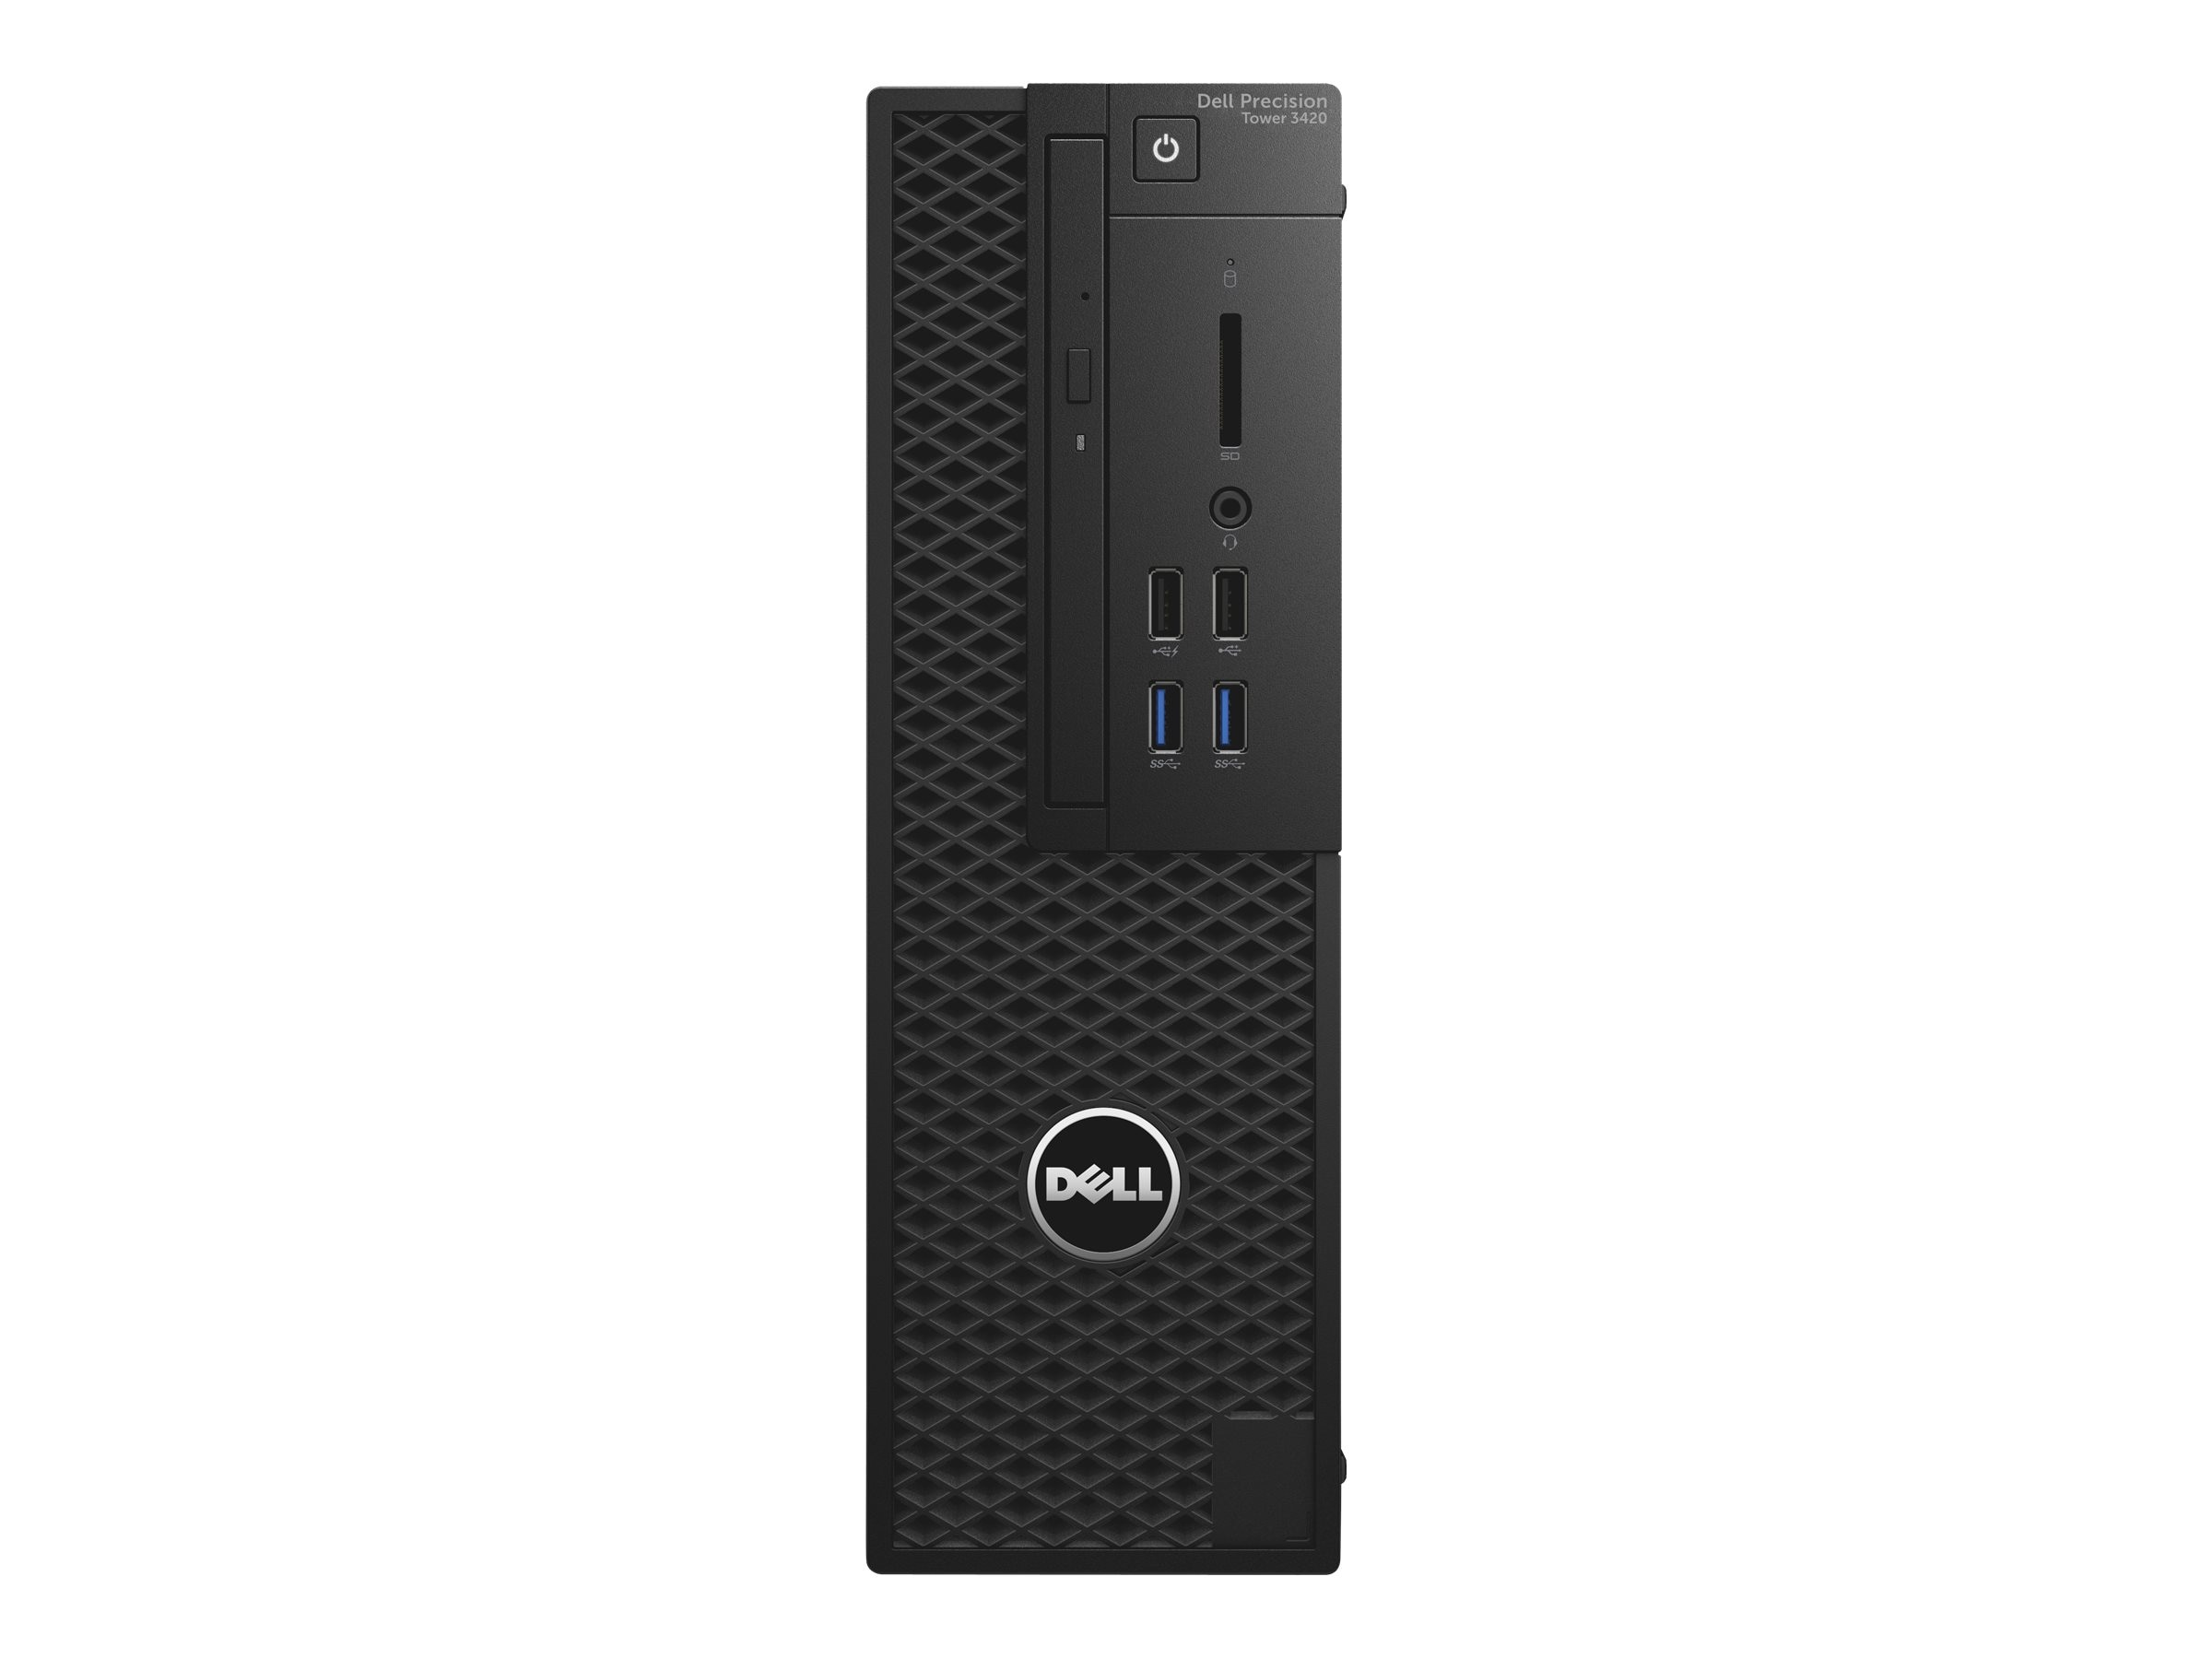 Dell Precision 3420 3.2GHz Core i5 Microsoft Windows 7 Professional 64-bit Edition   Windows 10 Pro, 7YPKD